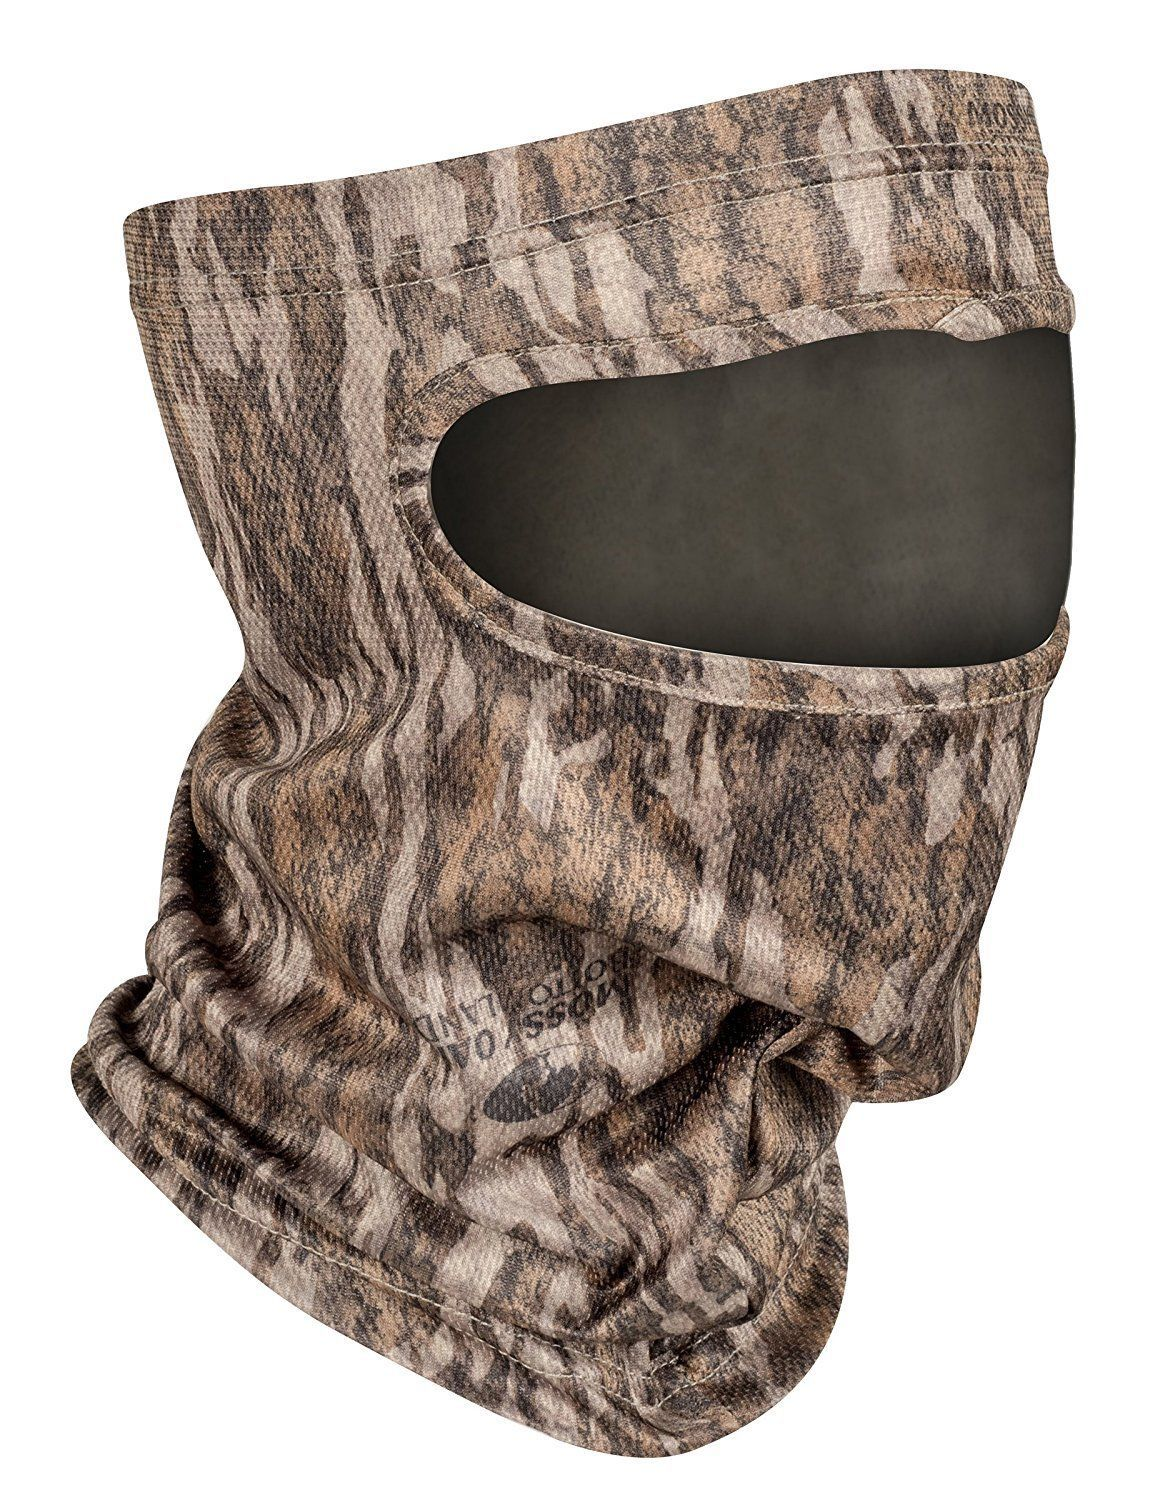 Camo Turkey Hunting Face Mask Head Net Mesh Duck Deer Camouflage Coverage Green